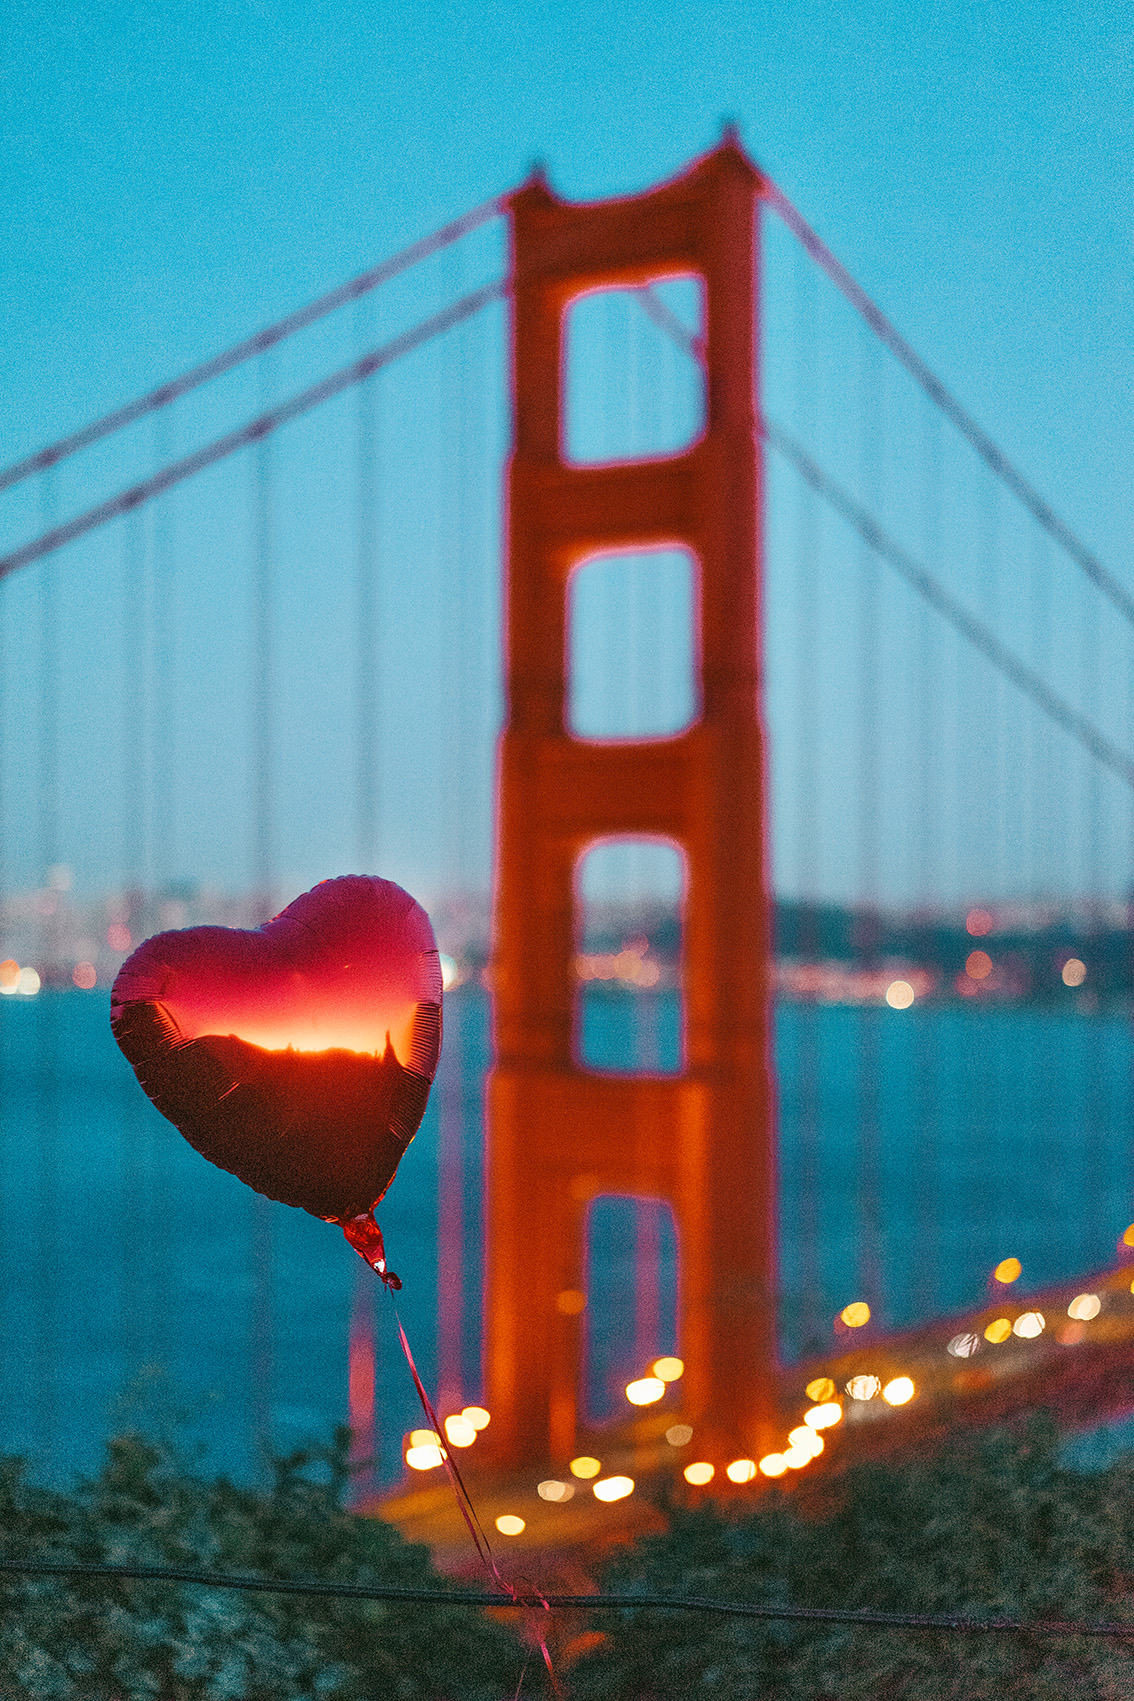 40 10 most instagrammable places in San Francisco you don't have to miss!